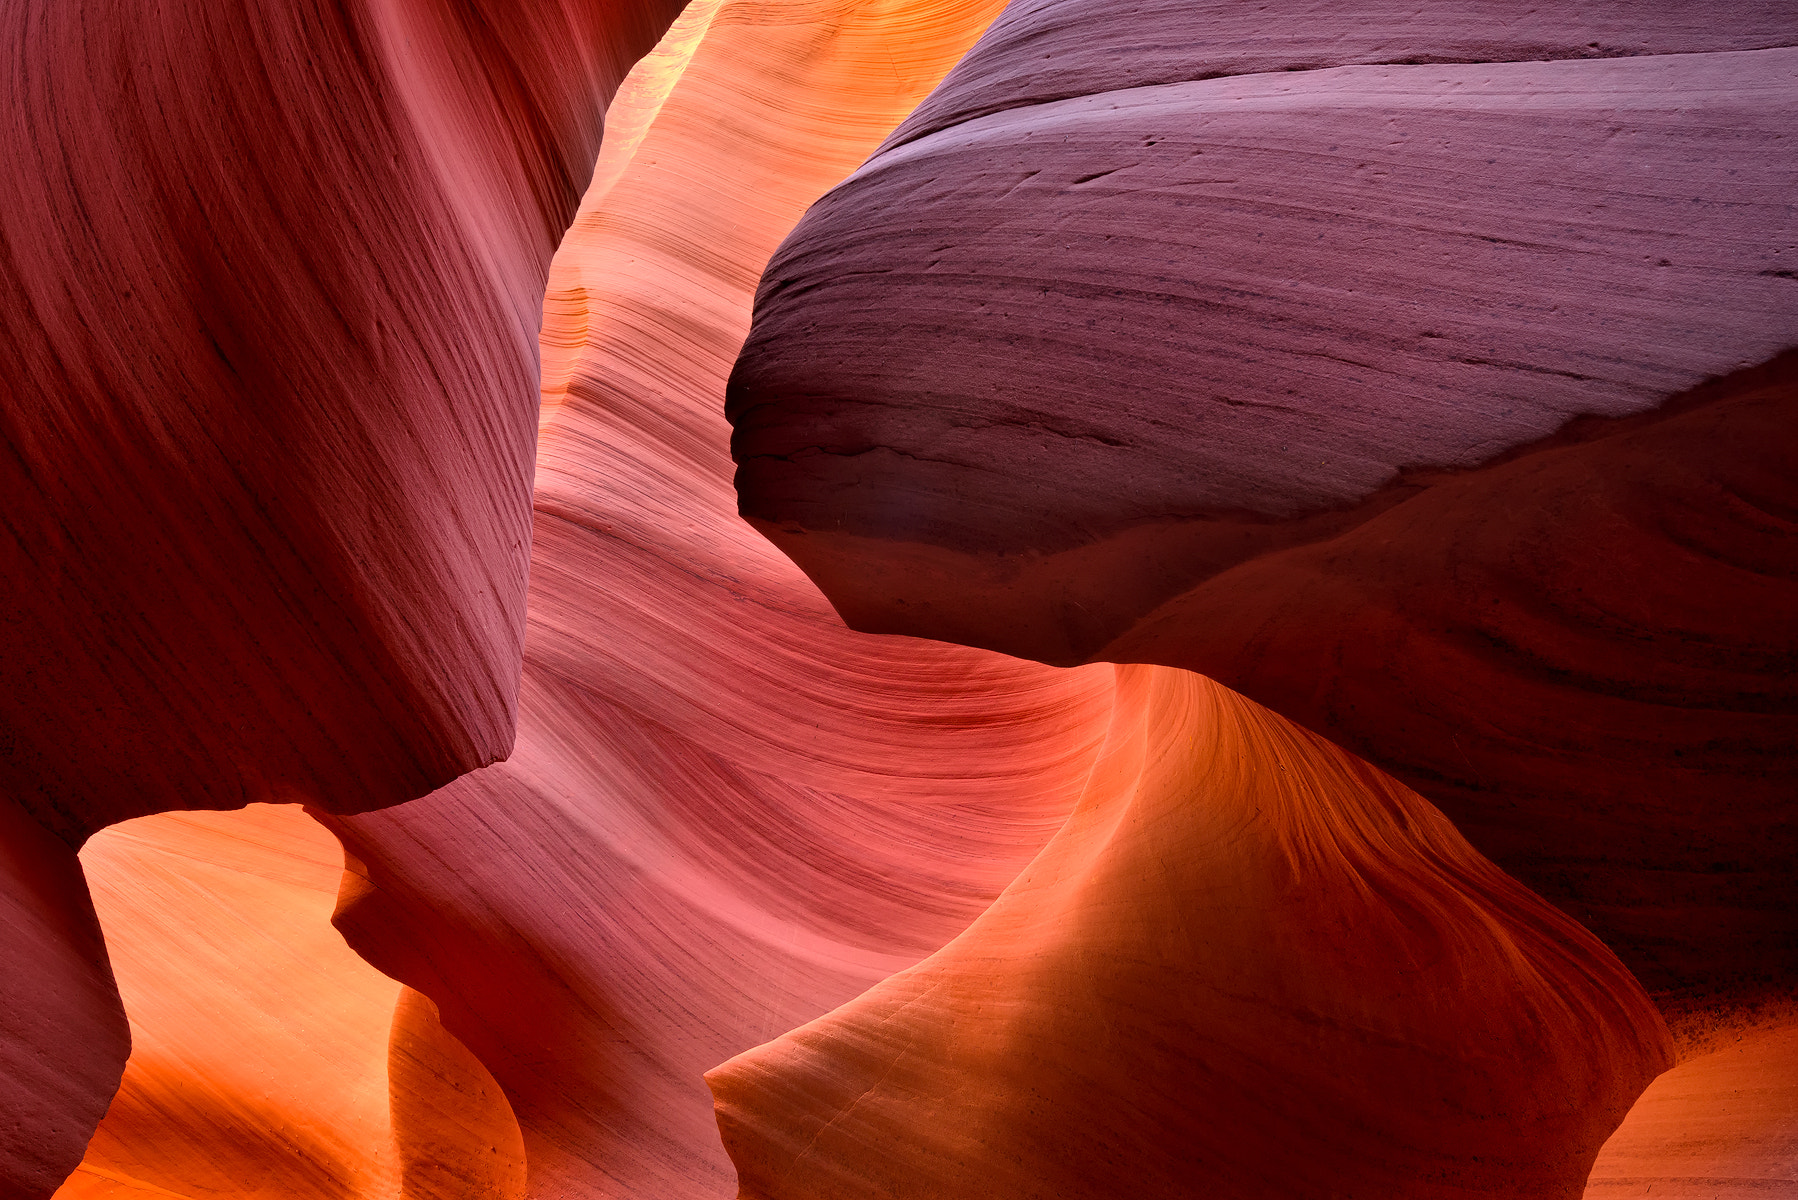 Photograph Curves and Color by James Newkirk on 500px